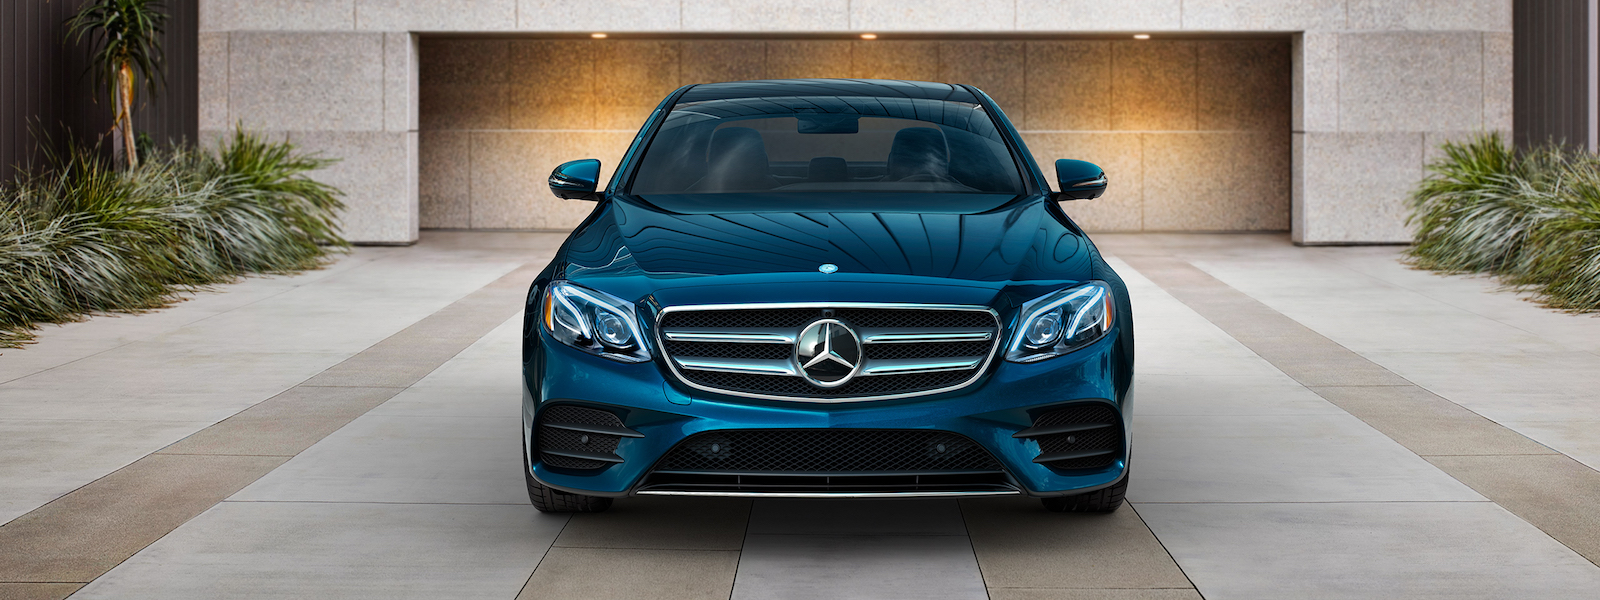 2017 Mercedes E-Class Safety